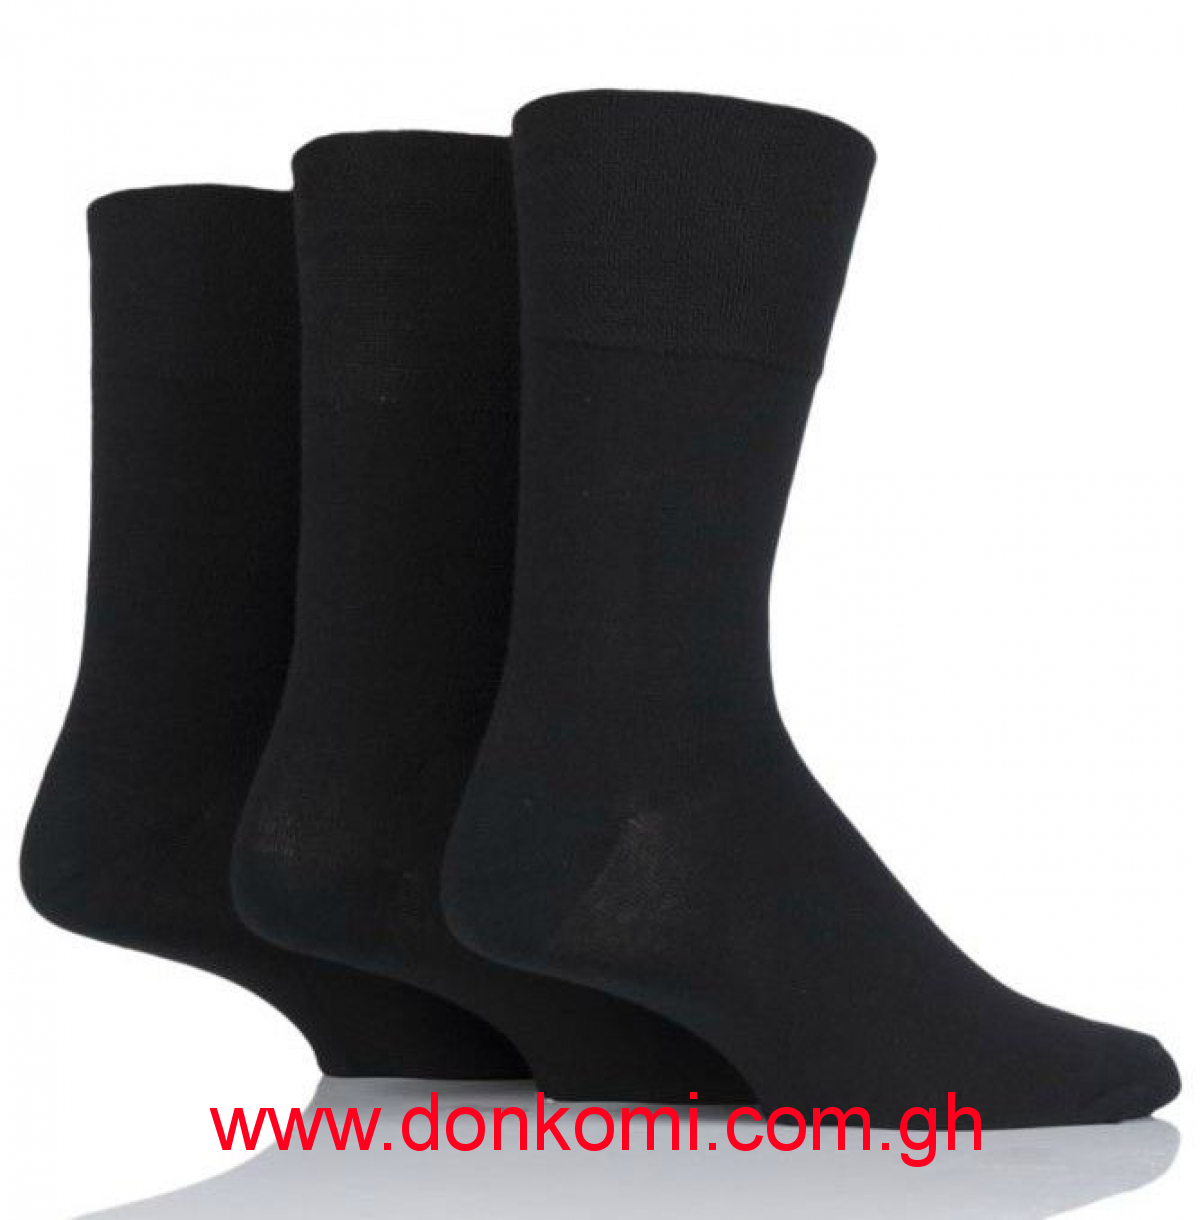 GENTLE GRIP MEN'S DIABETIC SOCKS